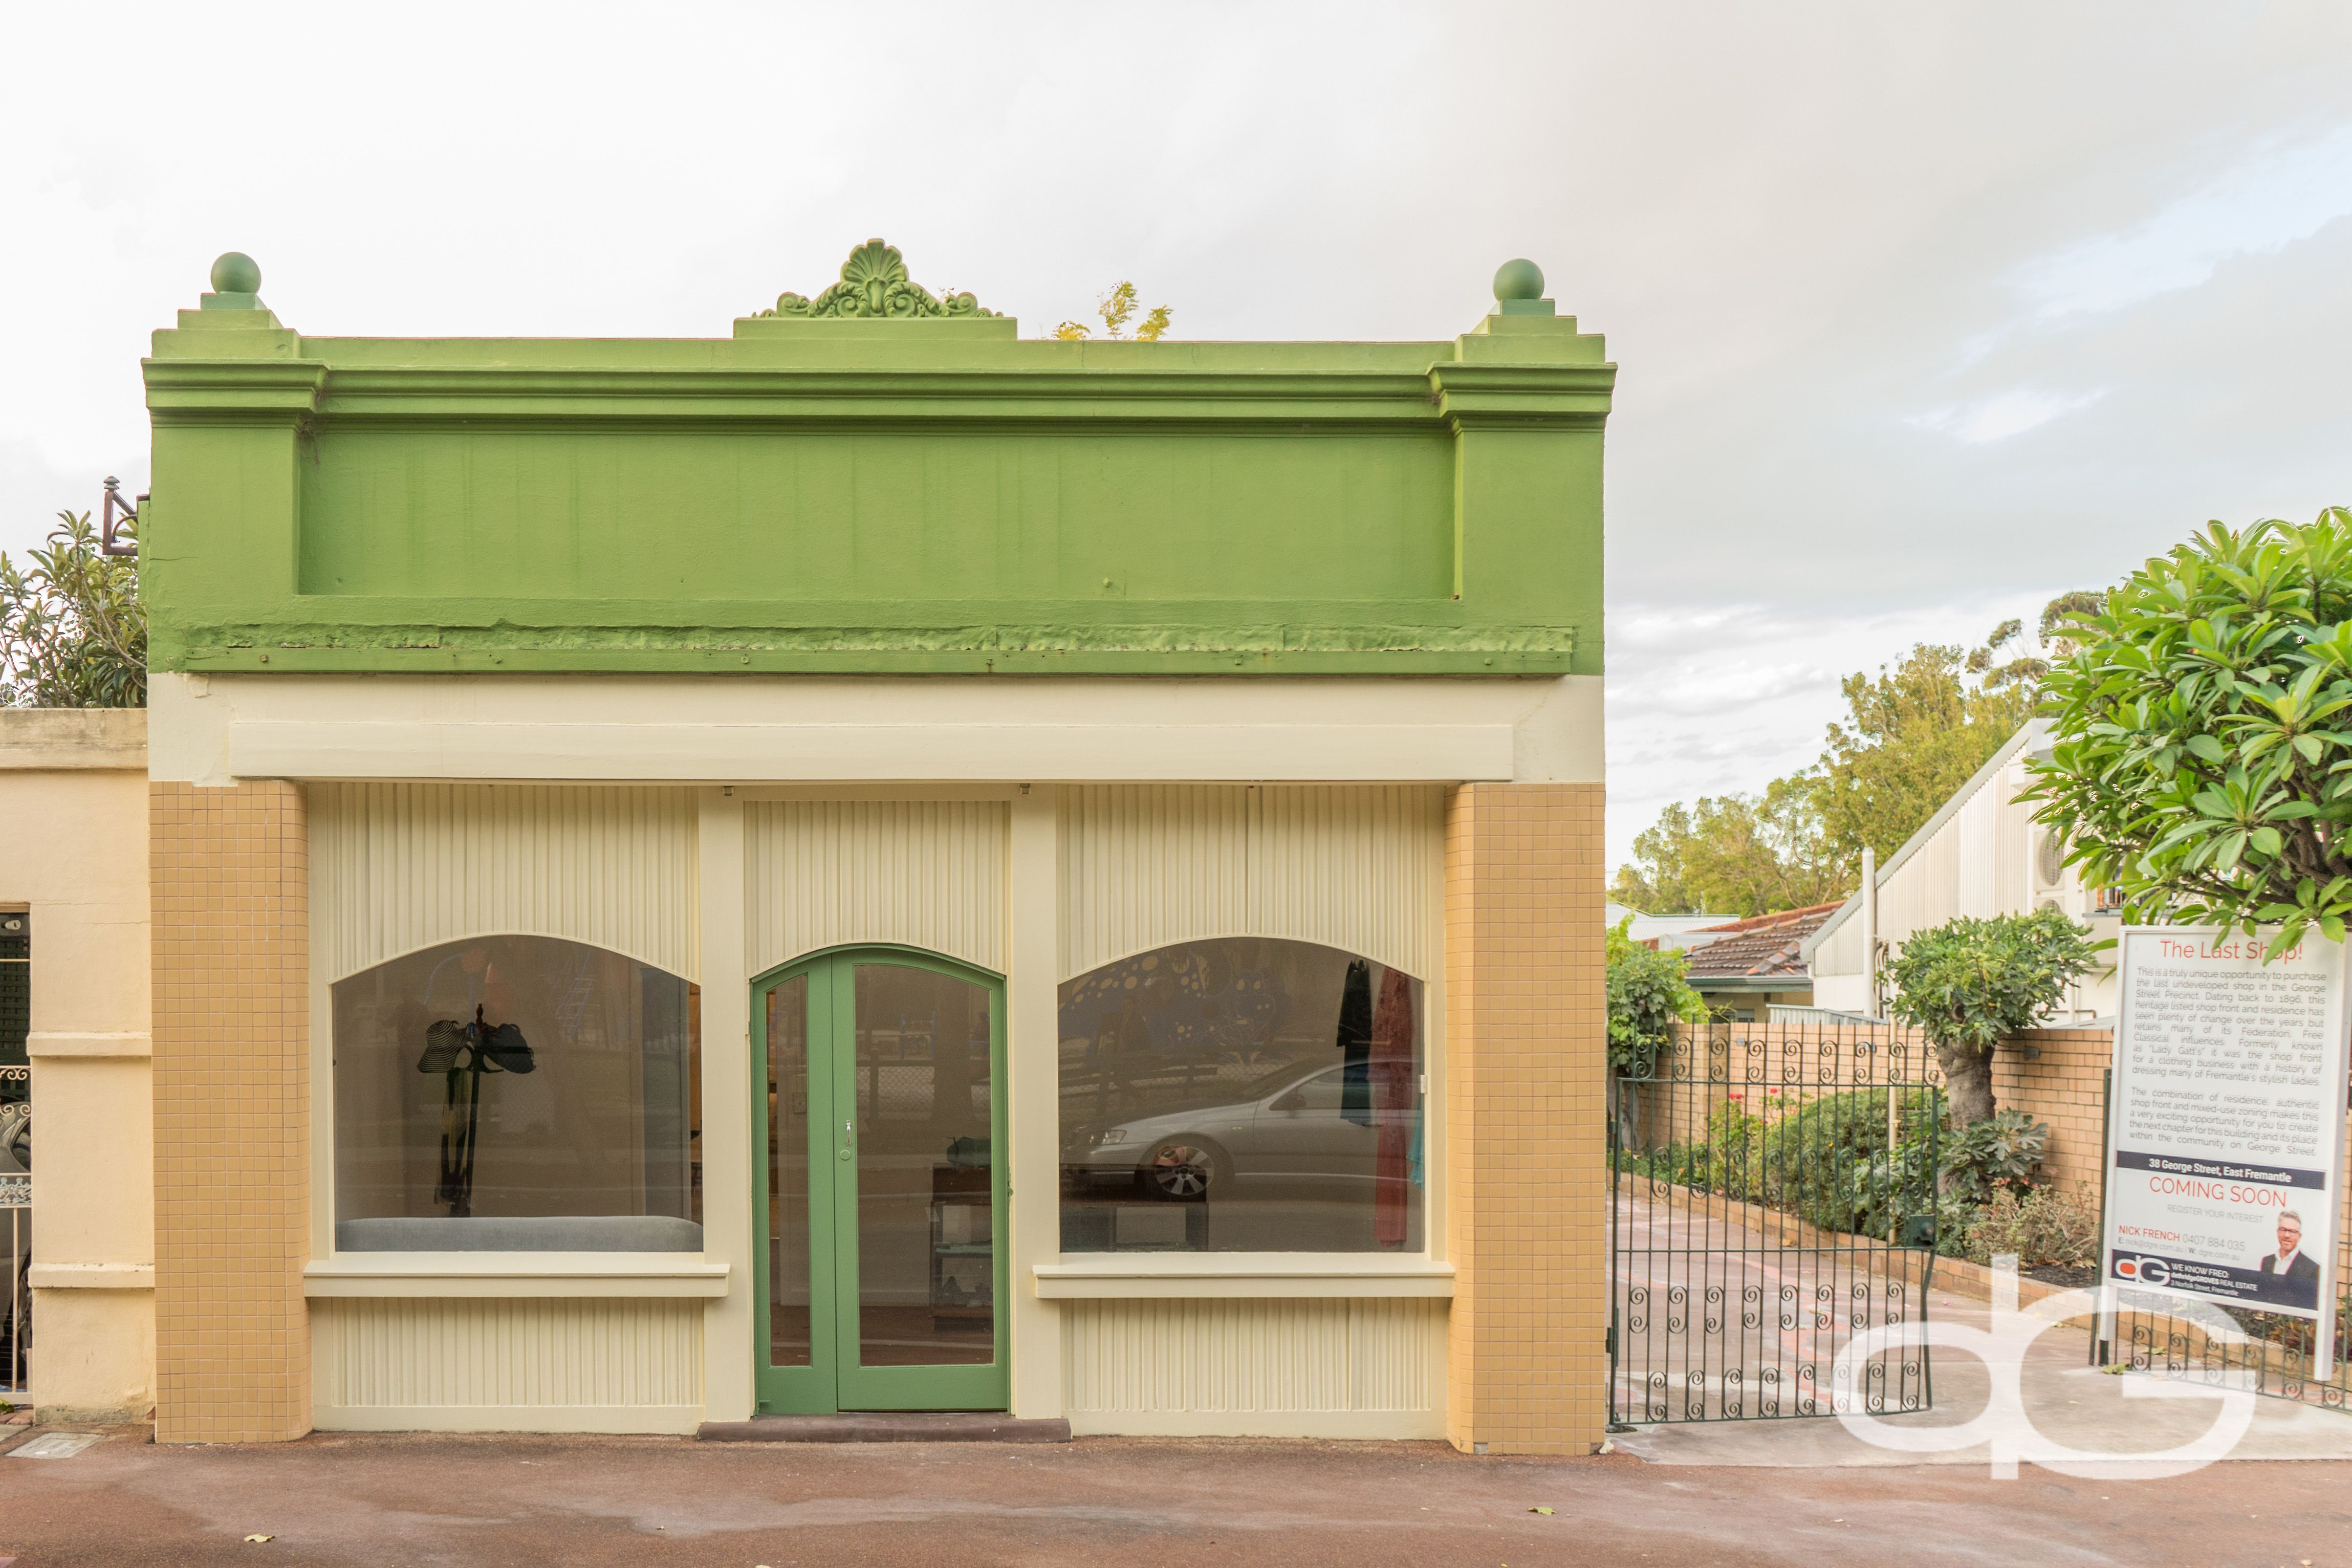 Sold property: 38 George Street - East Fremantle , WA 6158